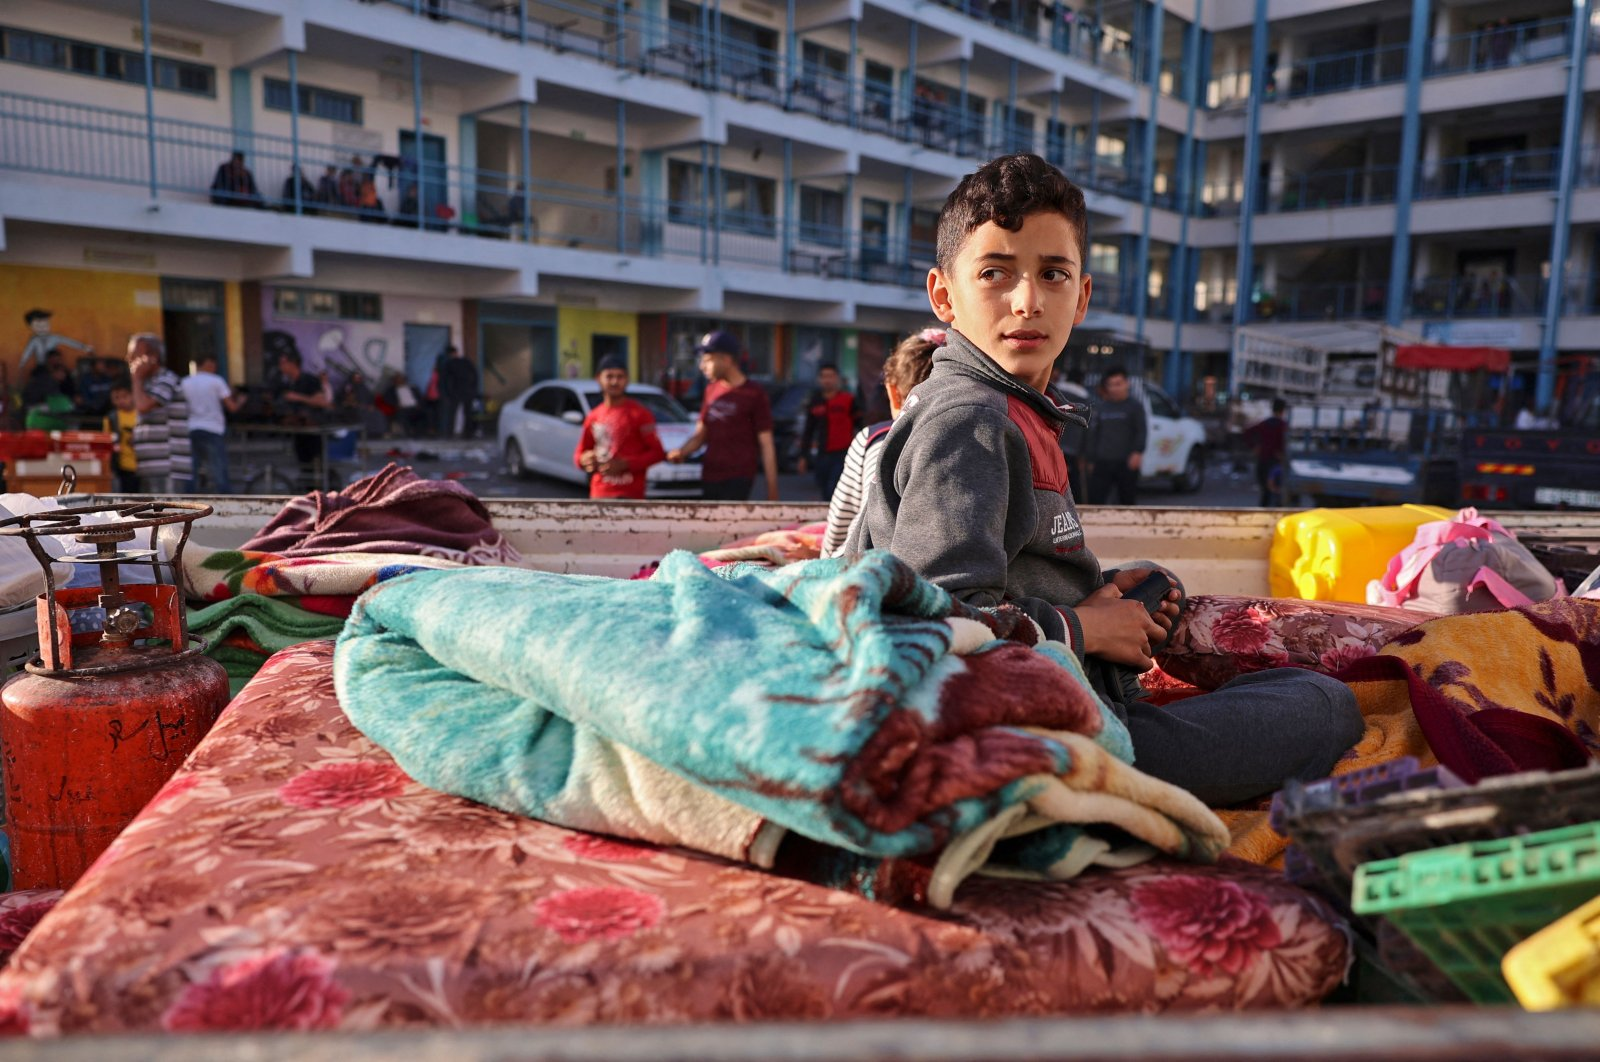 A Palestinian boy who fled his home due to Israeli air and artillery strikes sits on a mattress outside a school hosting refugees in Gaza City, Palestine, May 14, 2021. (AFP Photo)